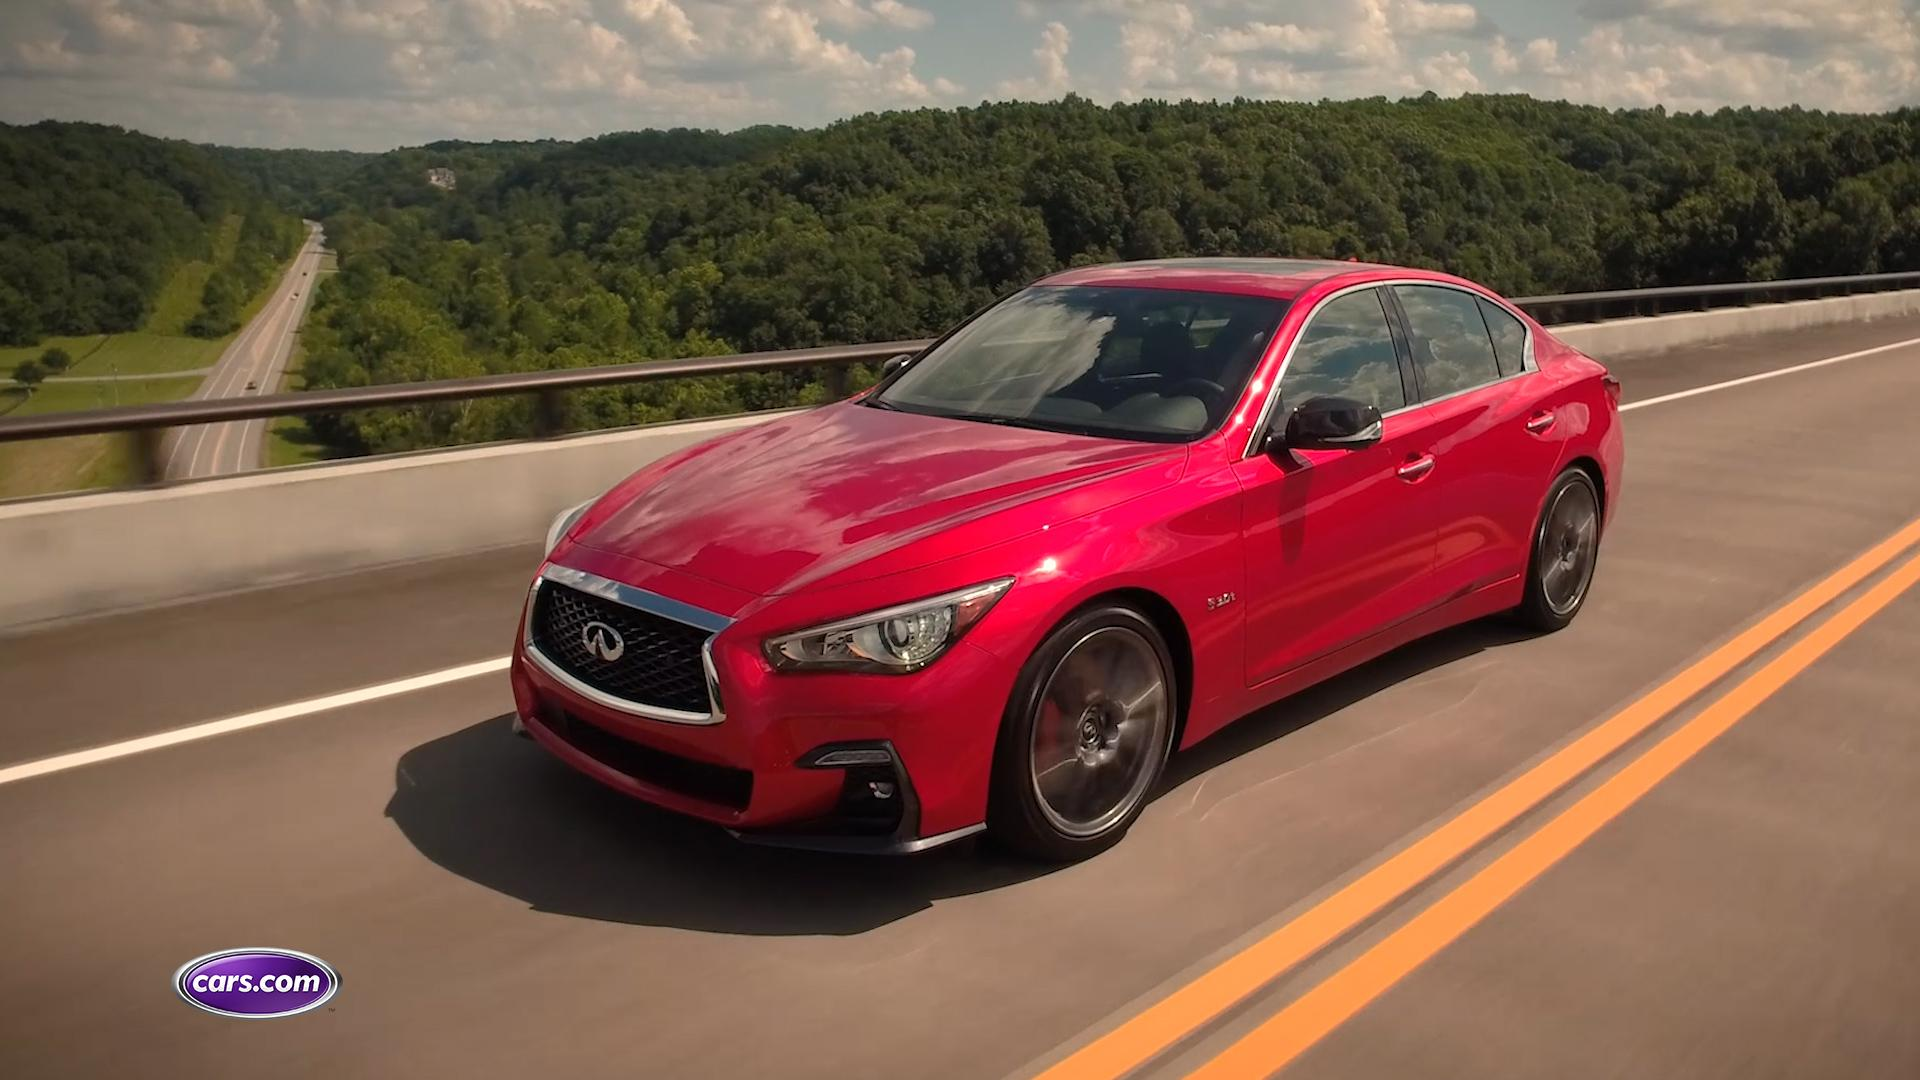 2018 Infiniti Q50 Video Review